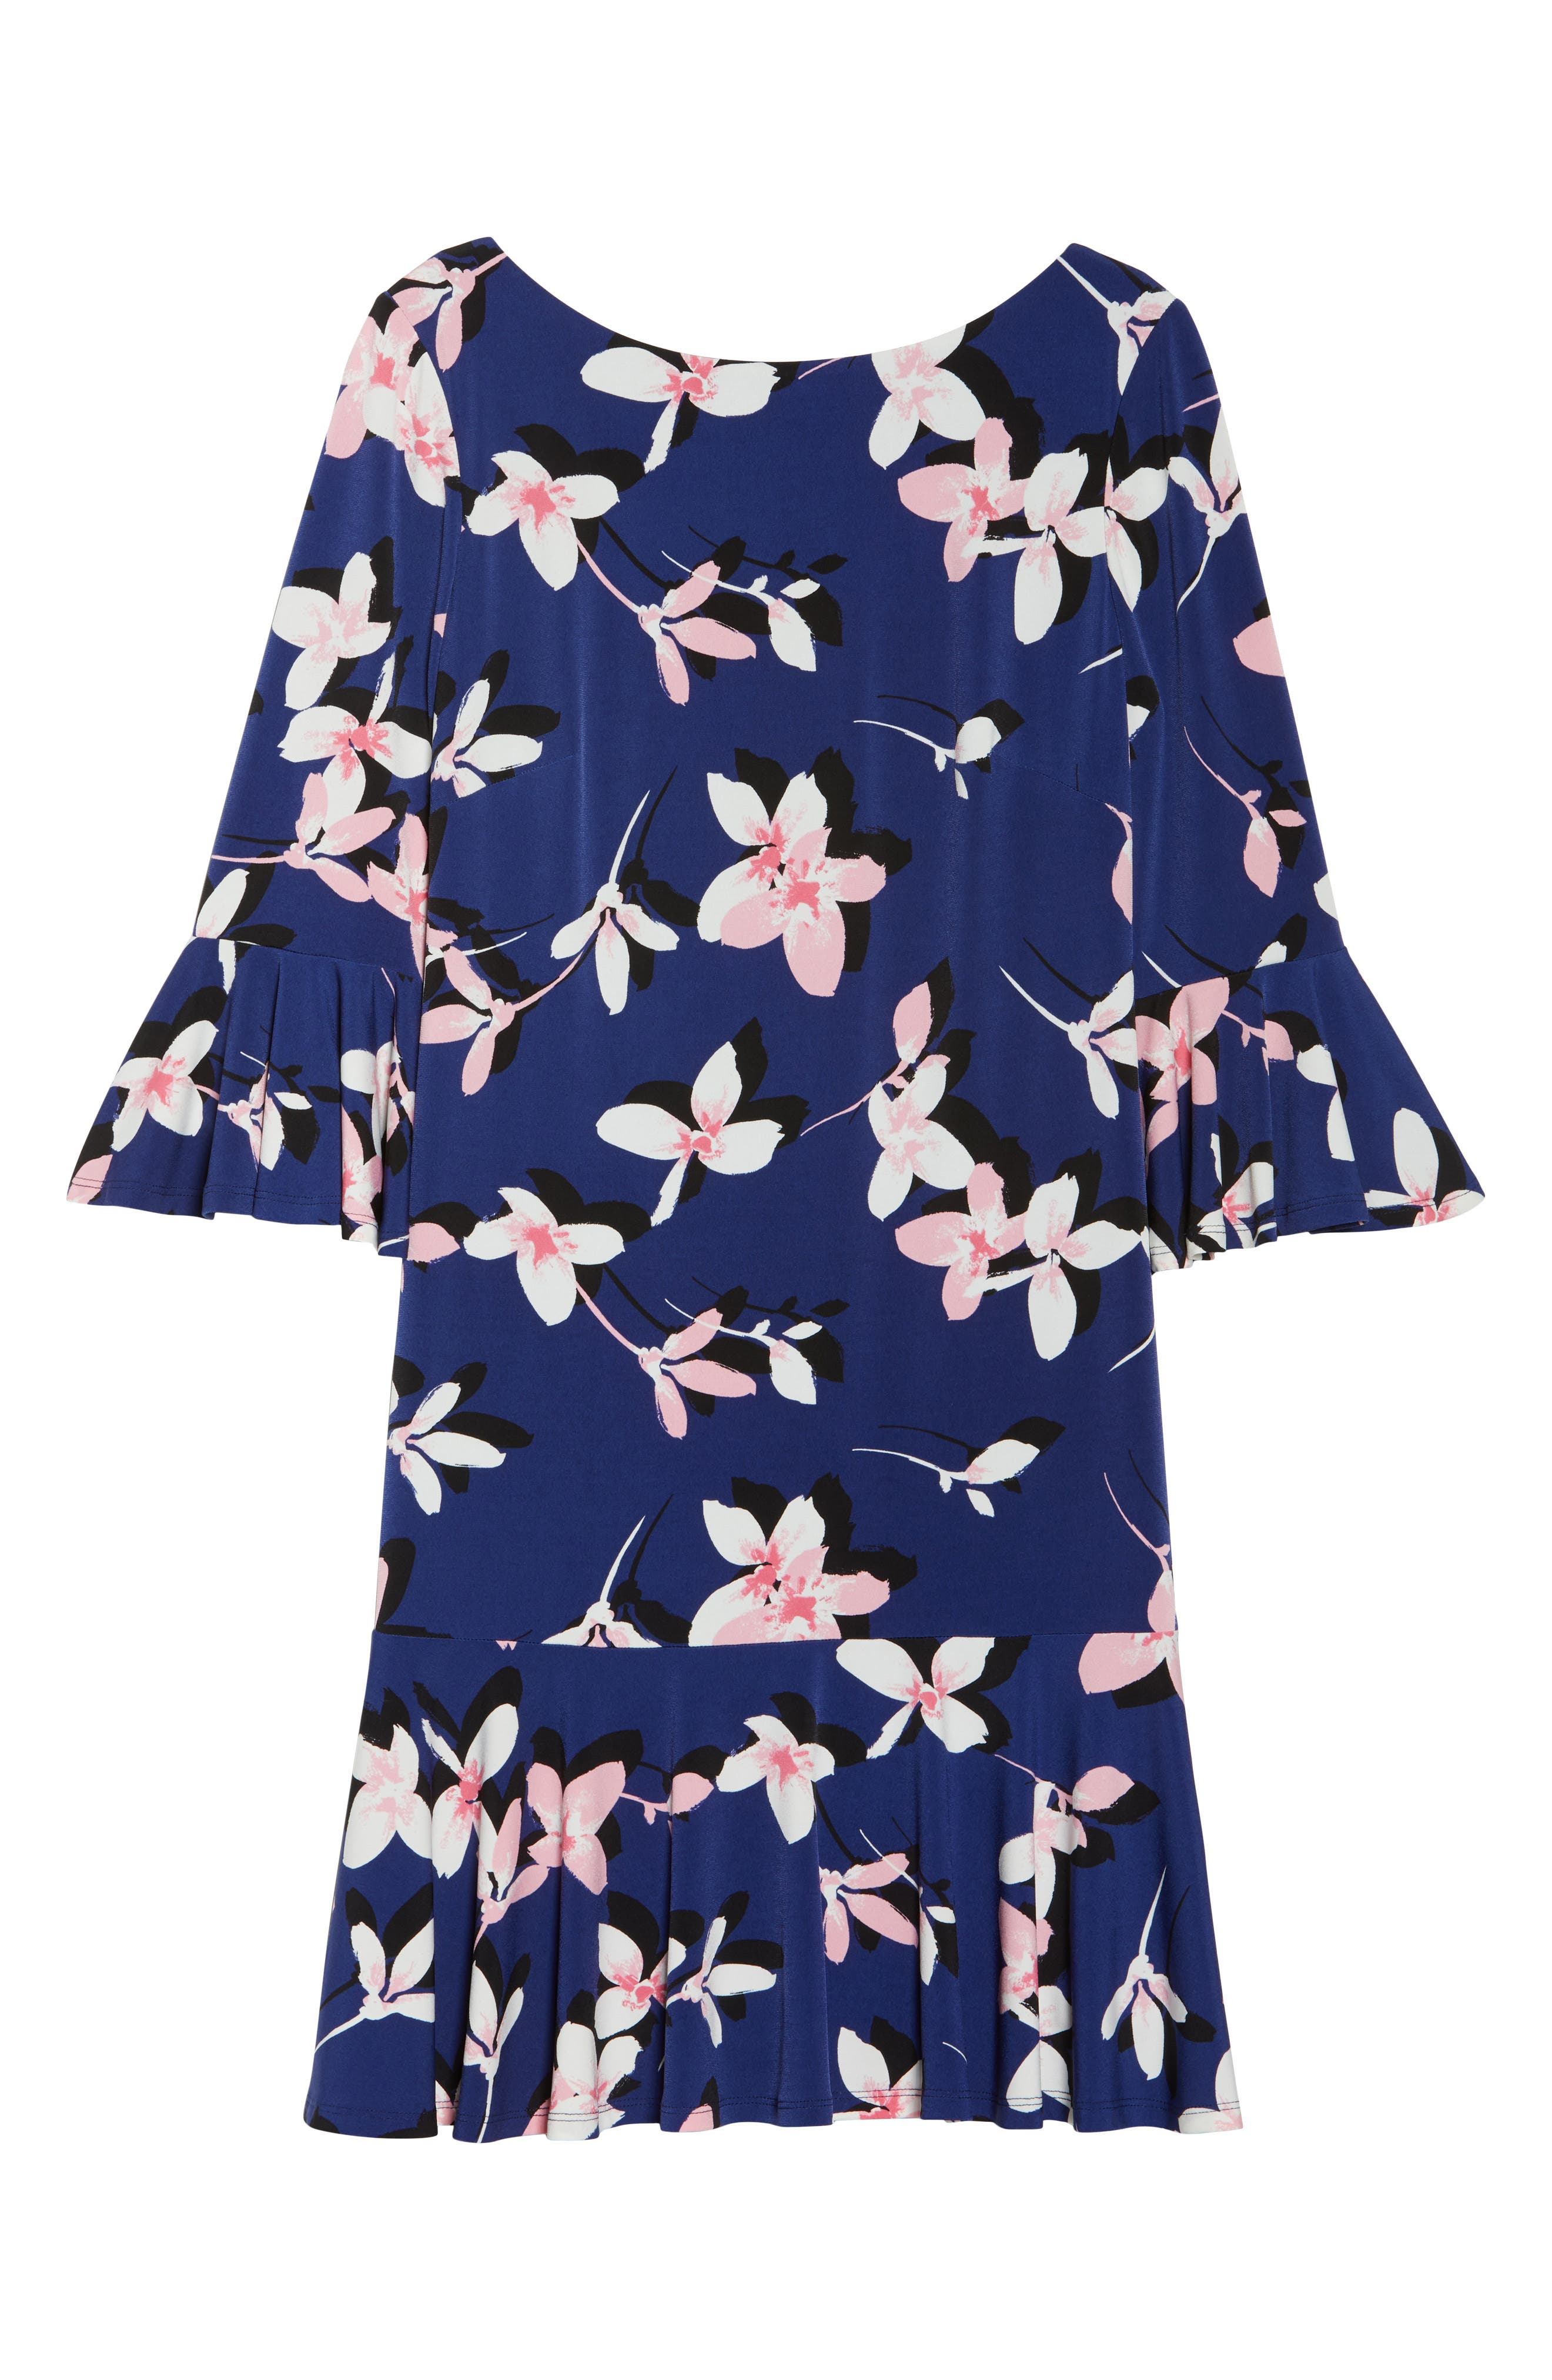 Floral Bell Sleeve Dress,                             Alternate thumbnail 7, color,                             NAVY/ PINK